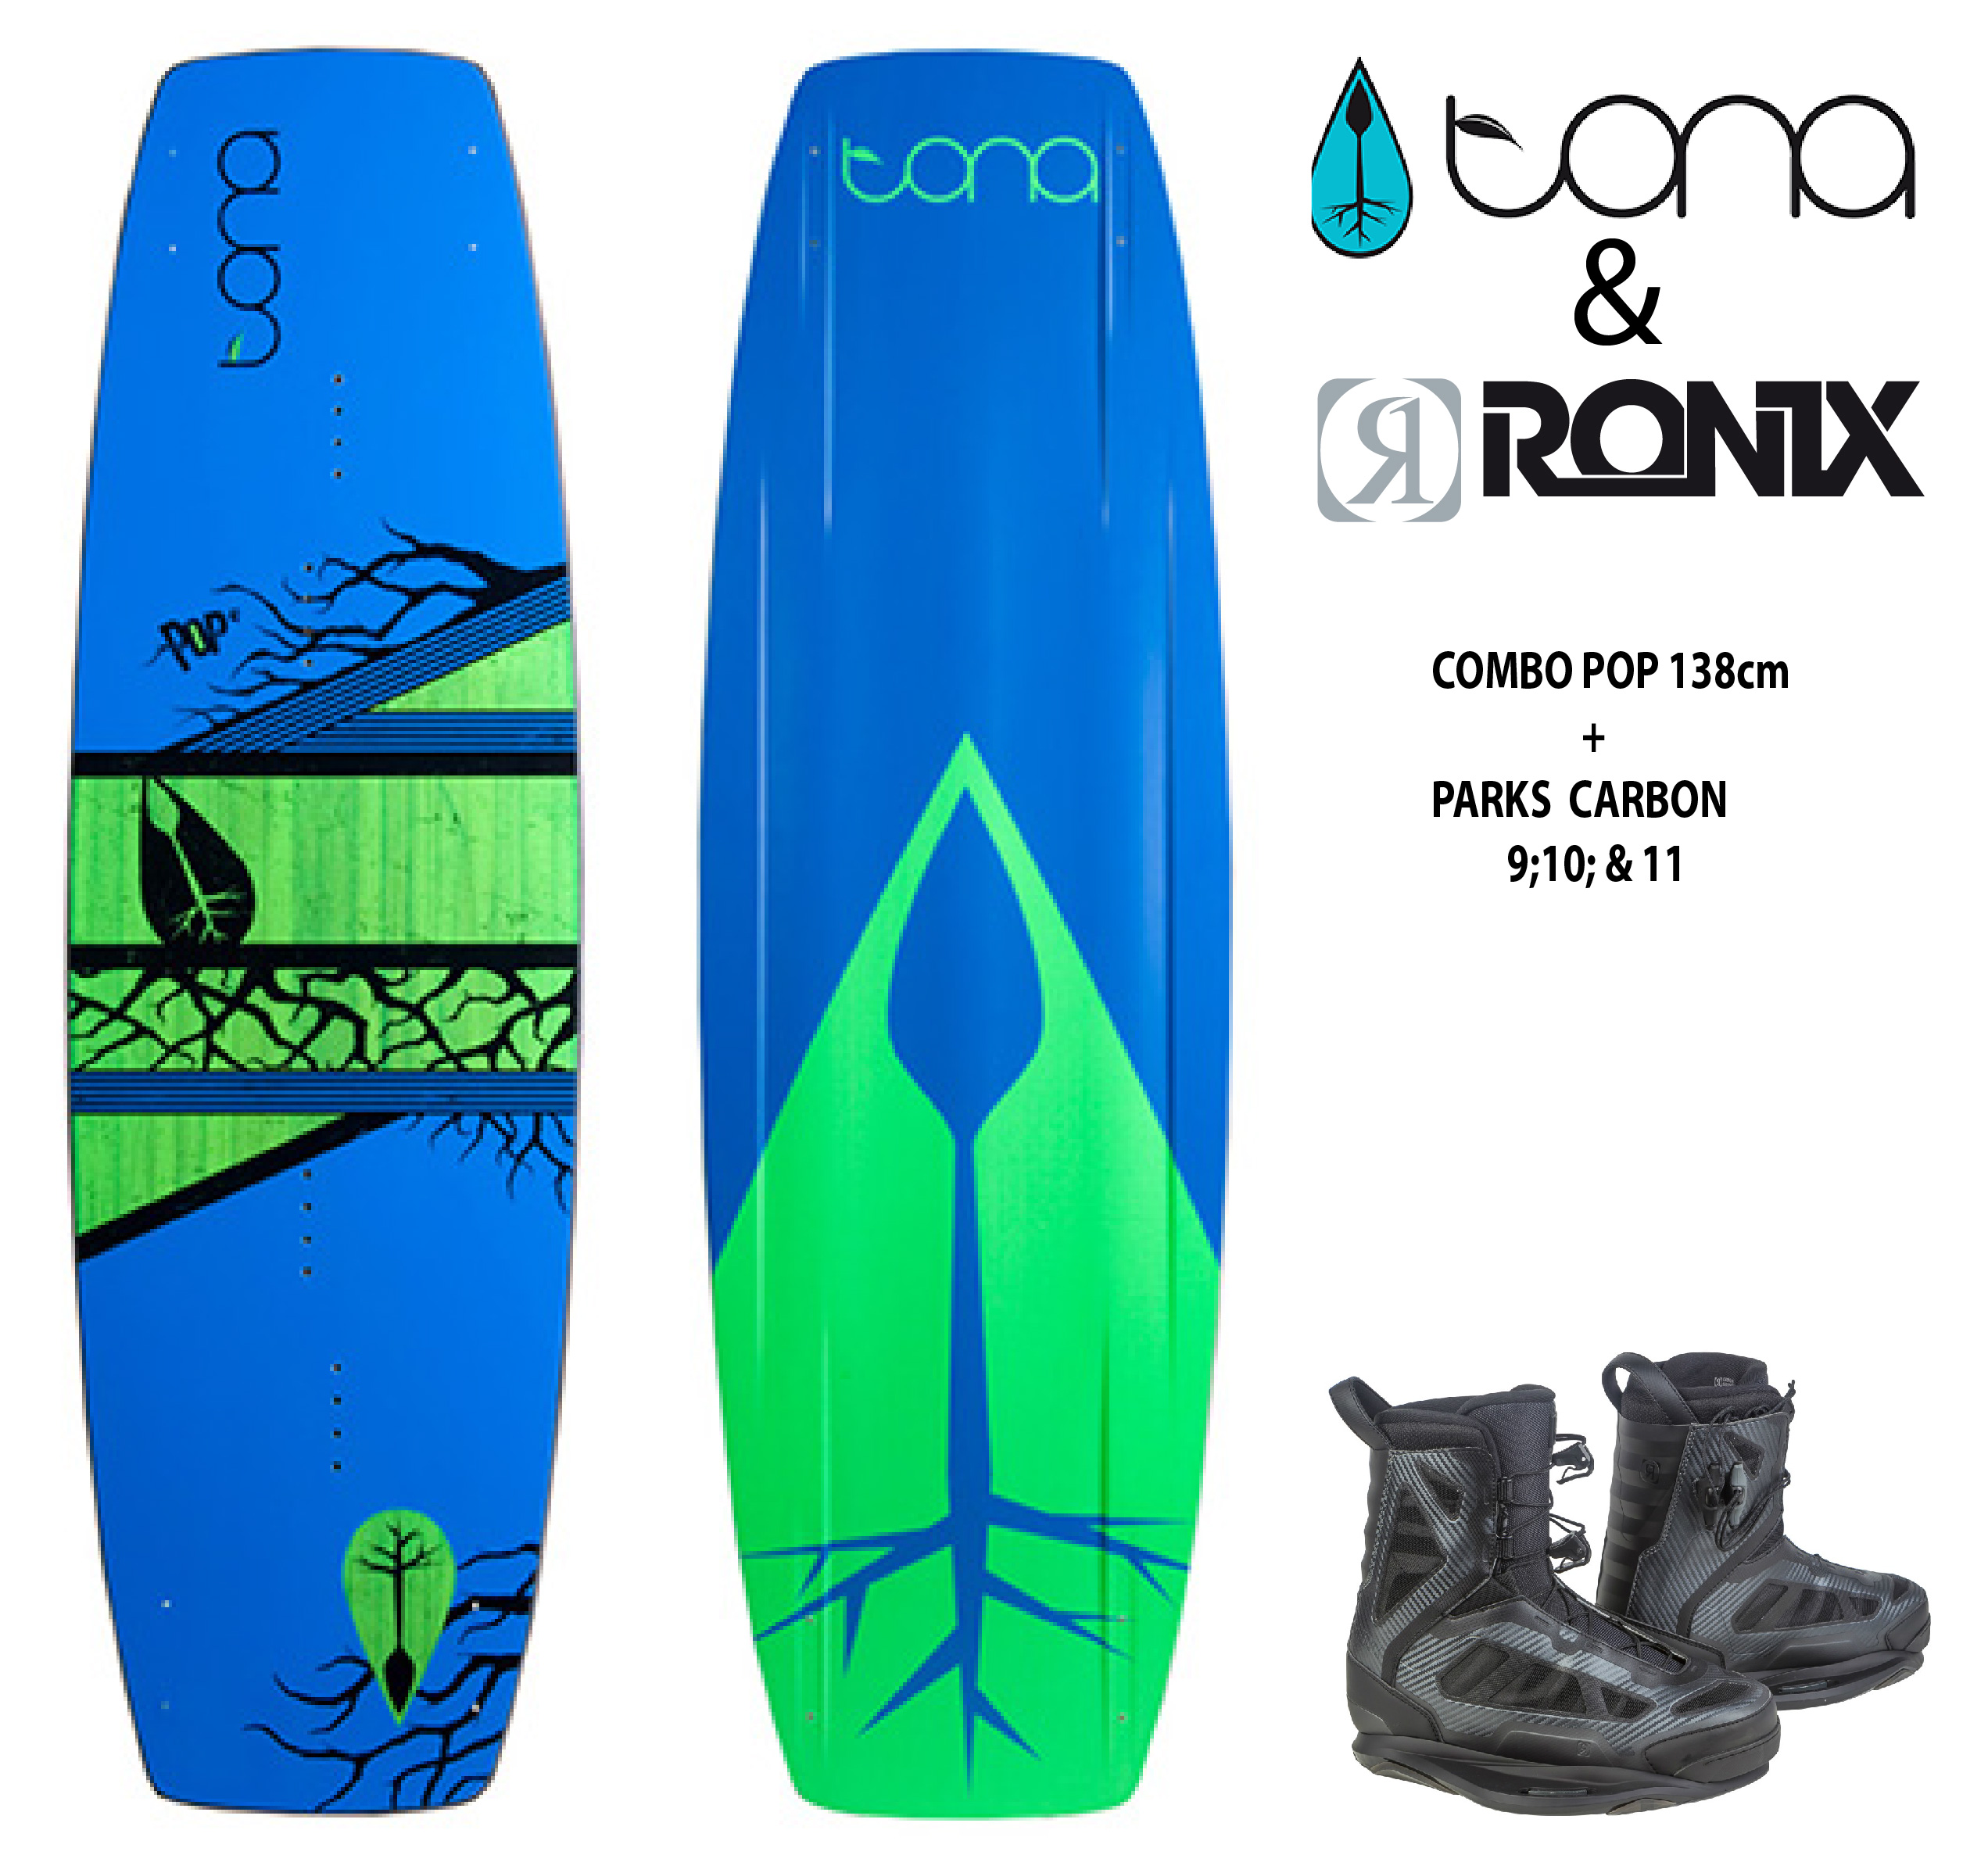 Combo Tona Pop 138cm c/Ronix Parks Chrome